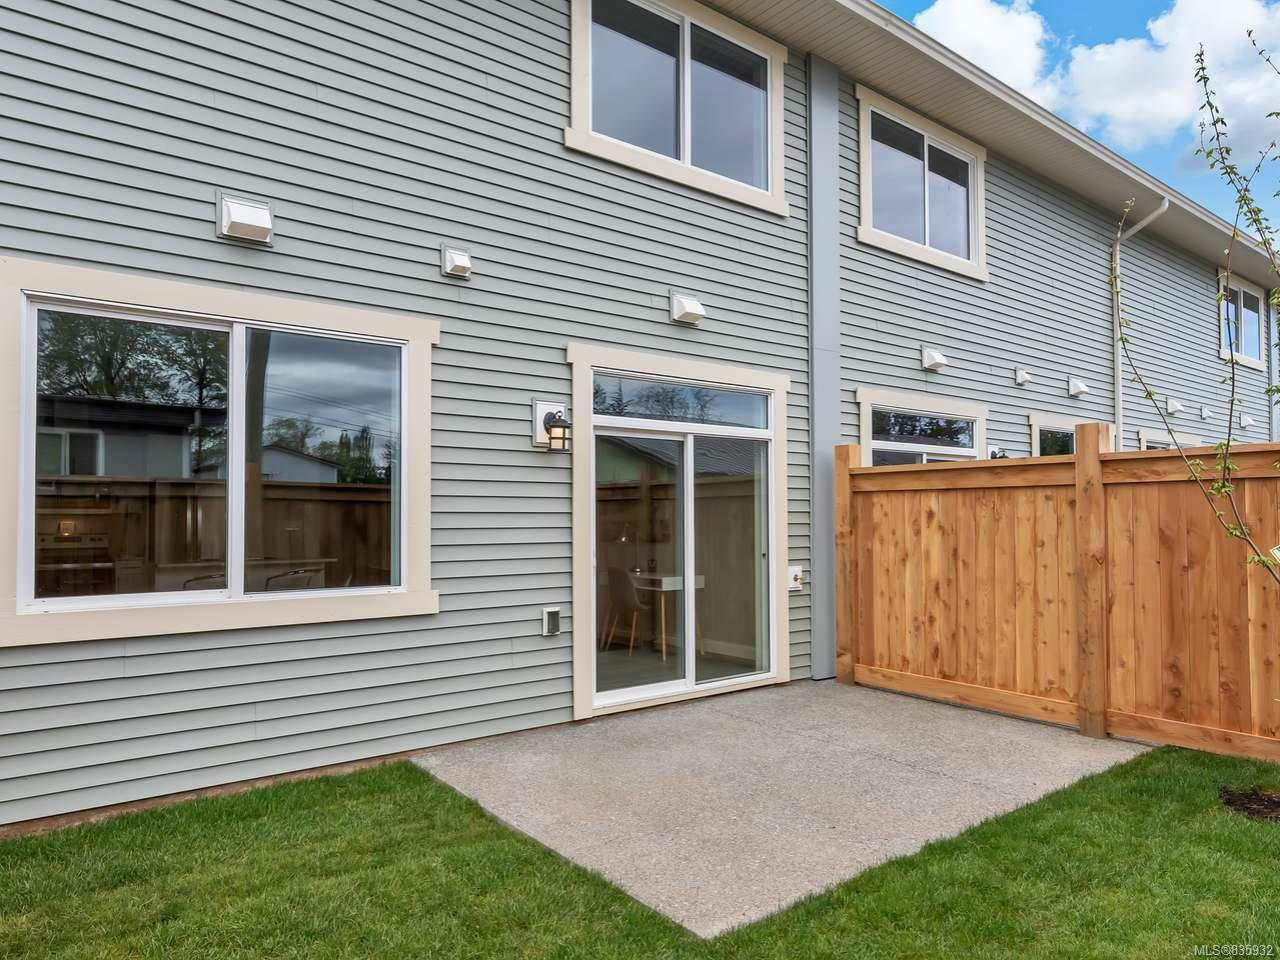 Photo 33: Photos: D 328 Petersen Rd in CAMPBELL RIVER: CR Campbell River West Row/Townhouse for sale (Campbell River)  : MLS®# 835932